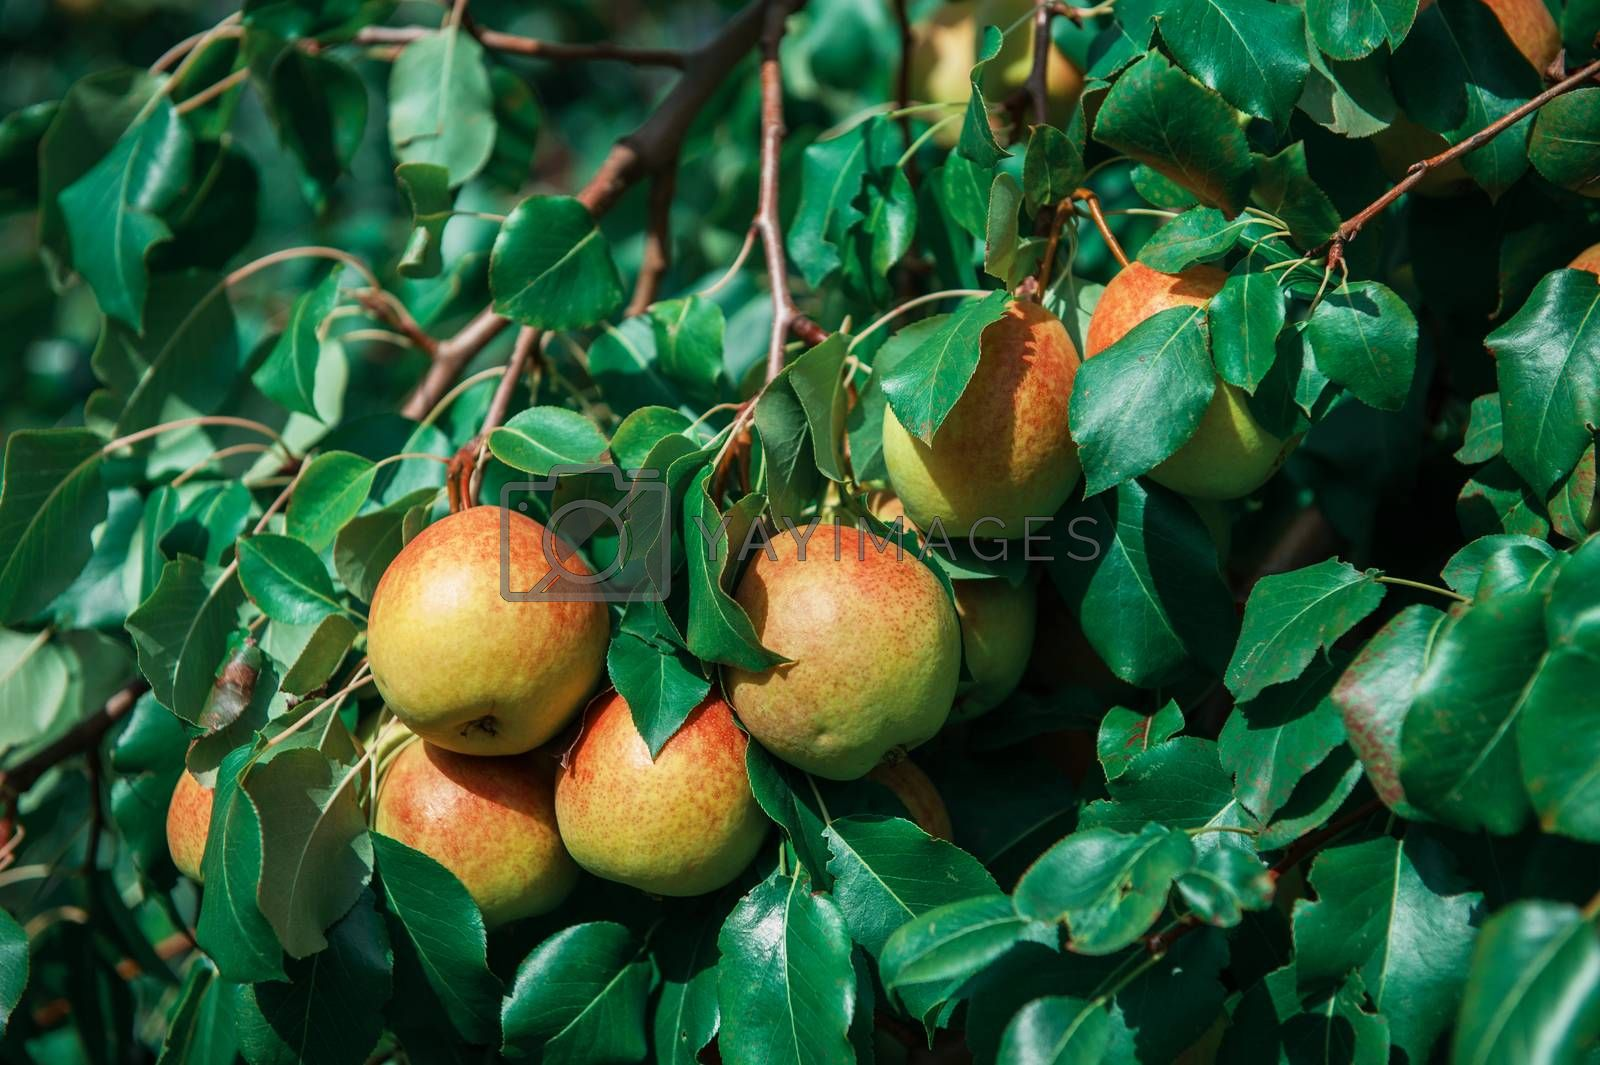 Pear tree with pears, organic natural fruits in a garden, harvest concept